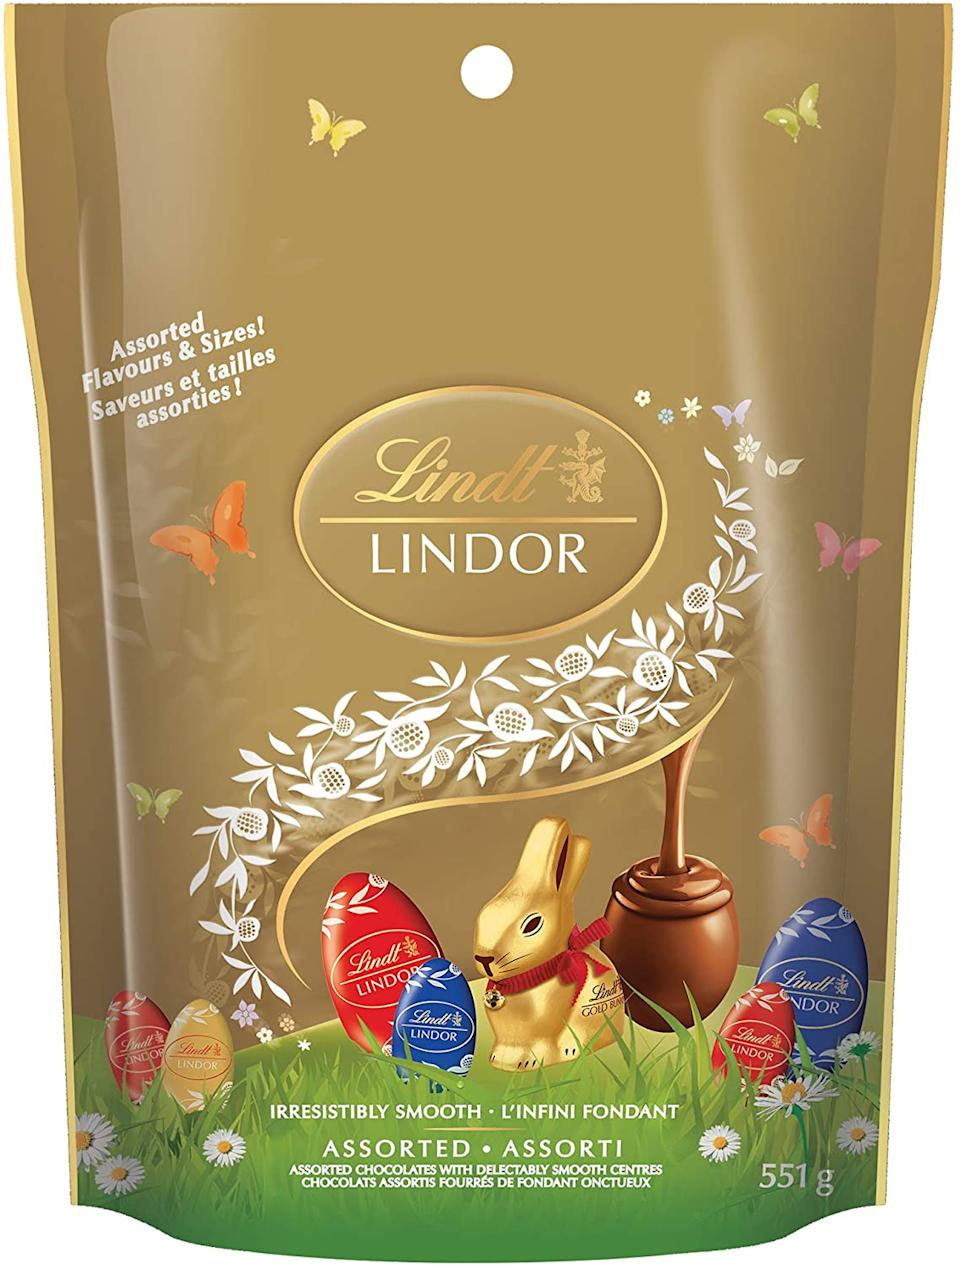 Lindt Lindor Assorted Chocolate Easter Eggs. Image via Amazon.